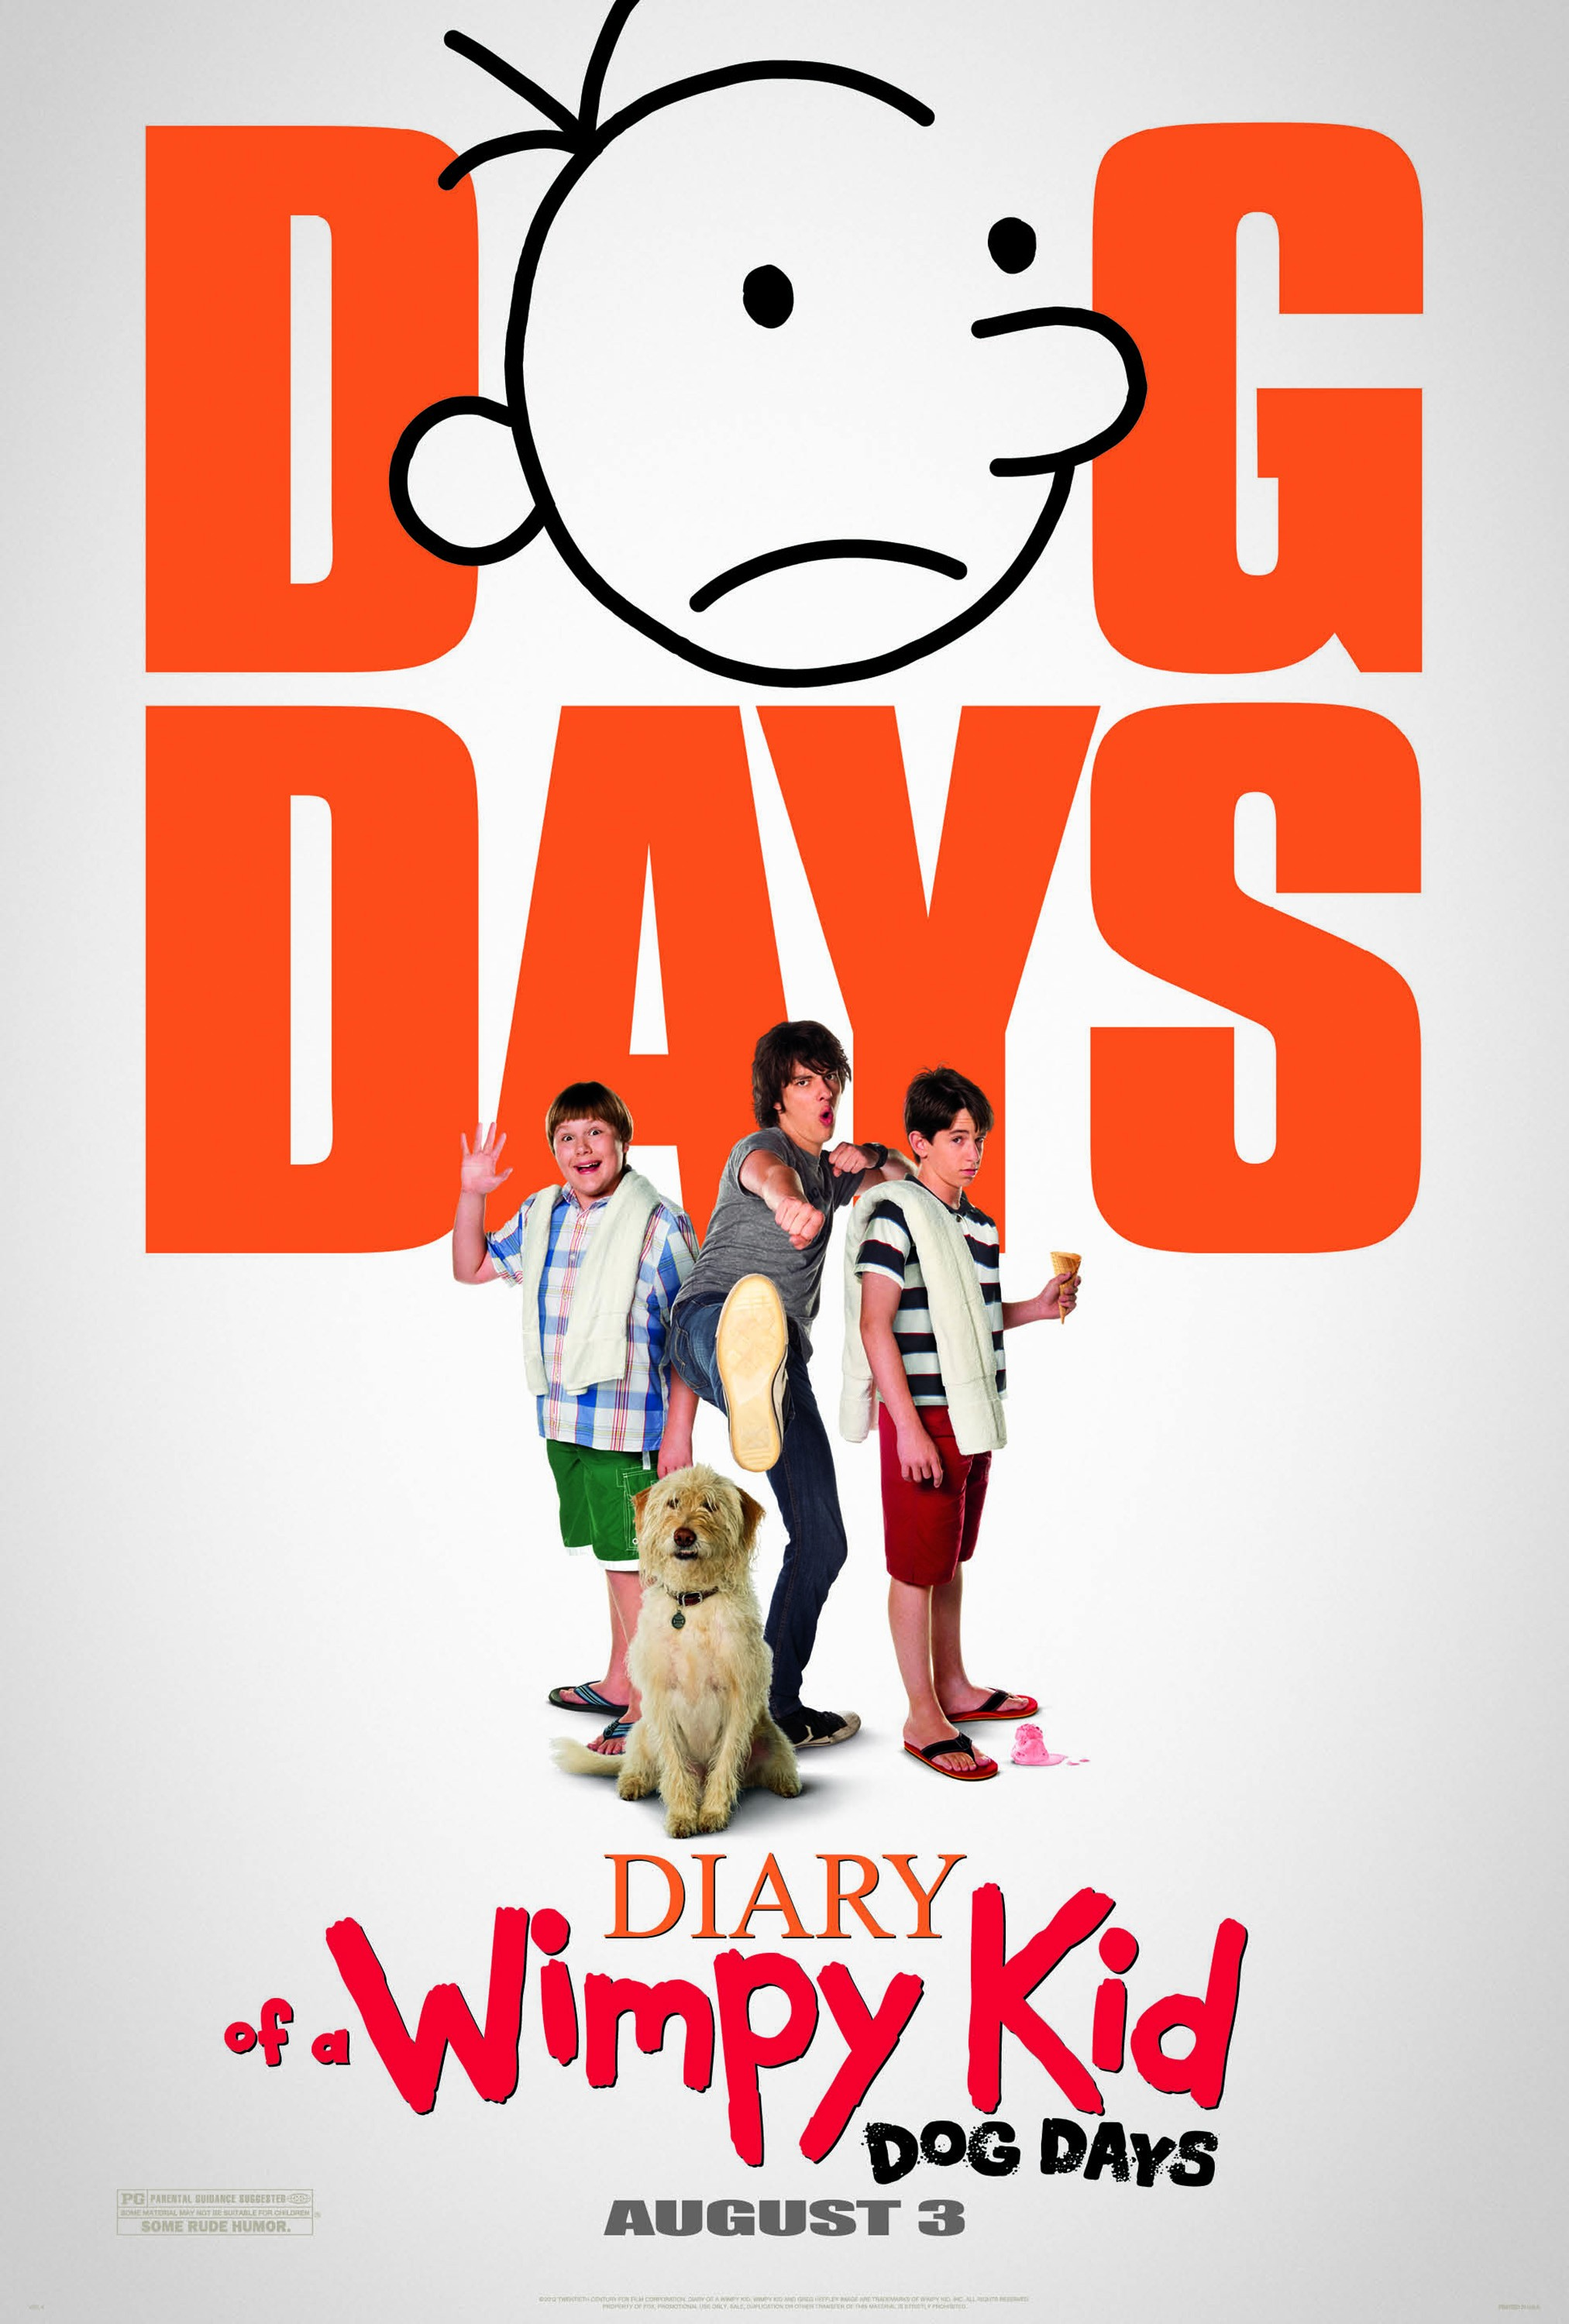 Diary of a wimpy kid dog days is directed by david bowers and stars